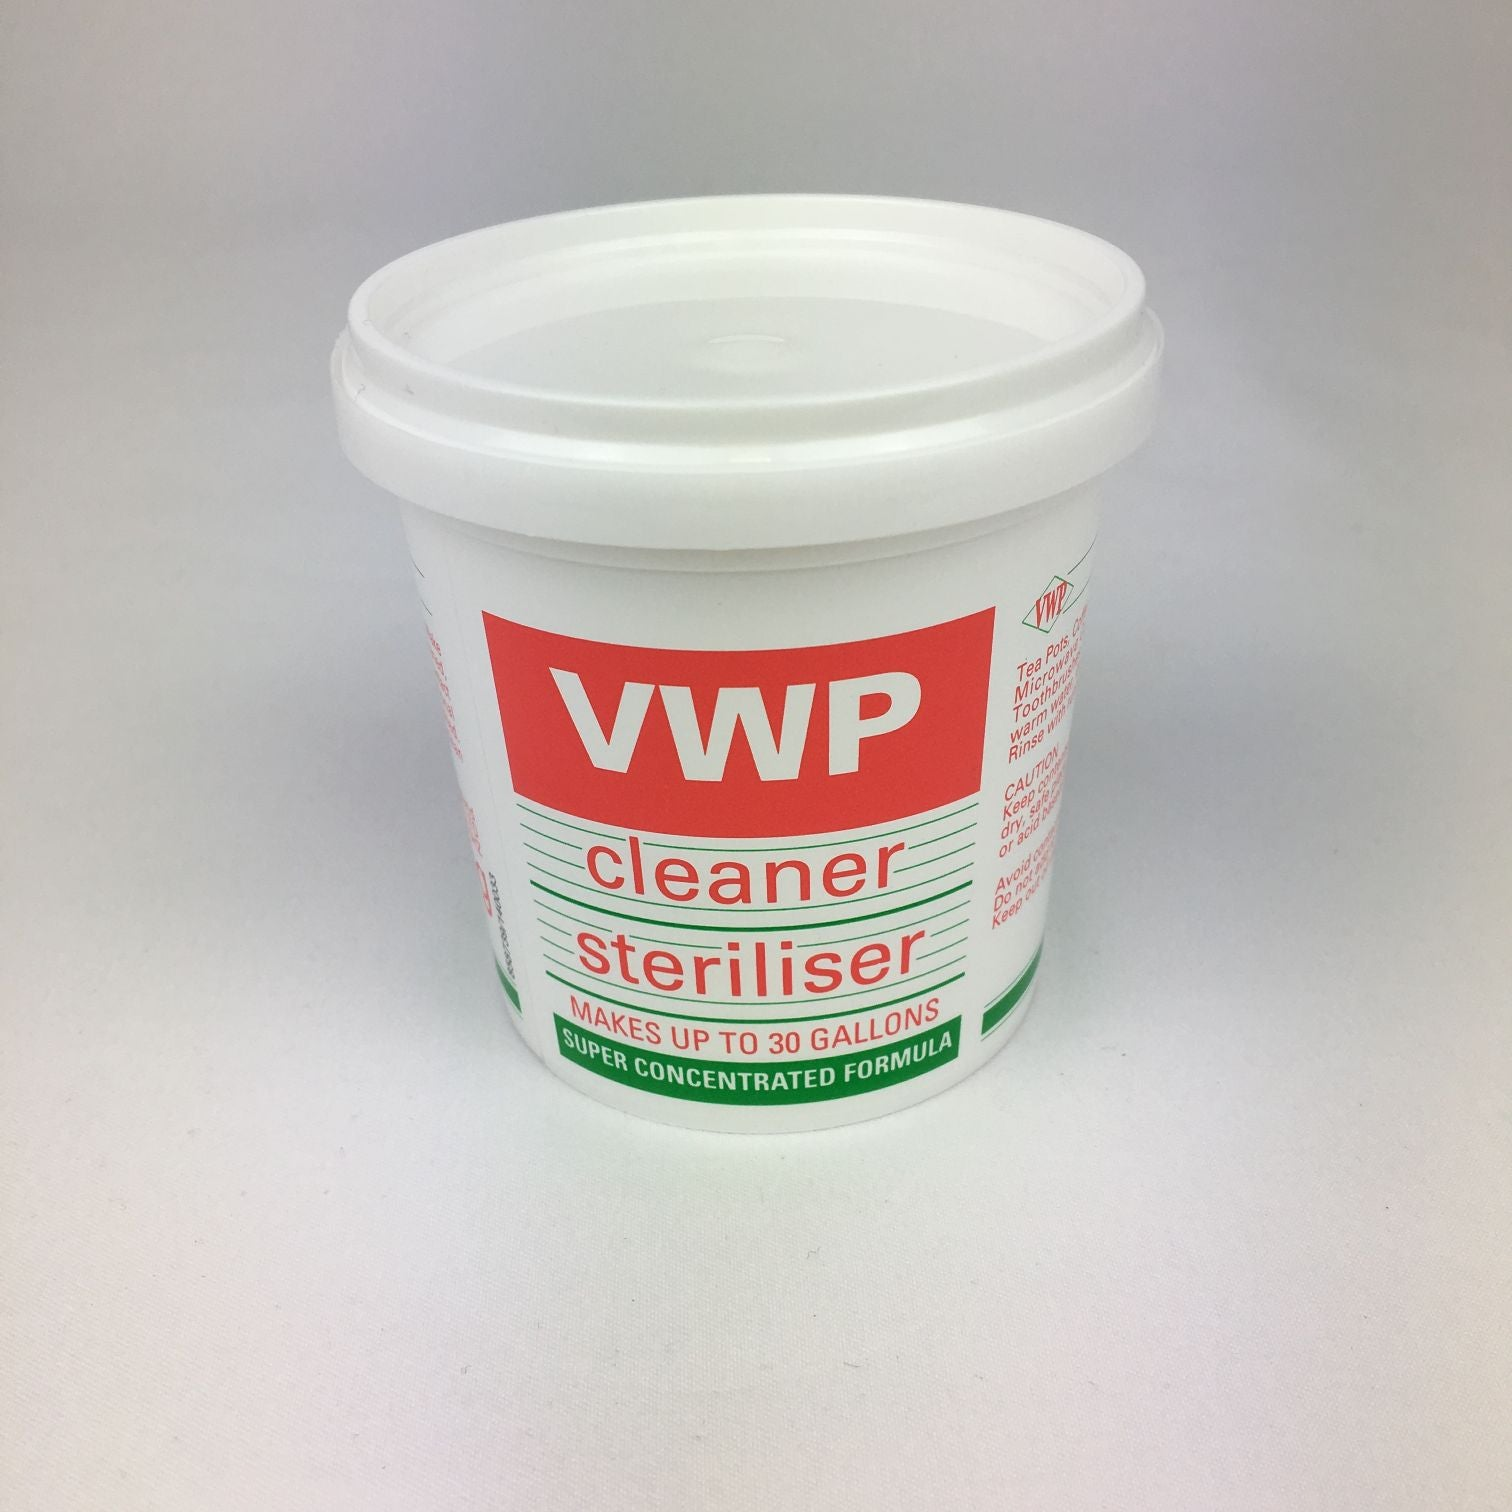 VWP Cleaner/Sterilizer 100g